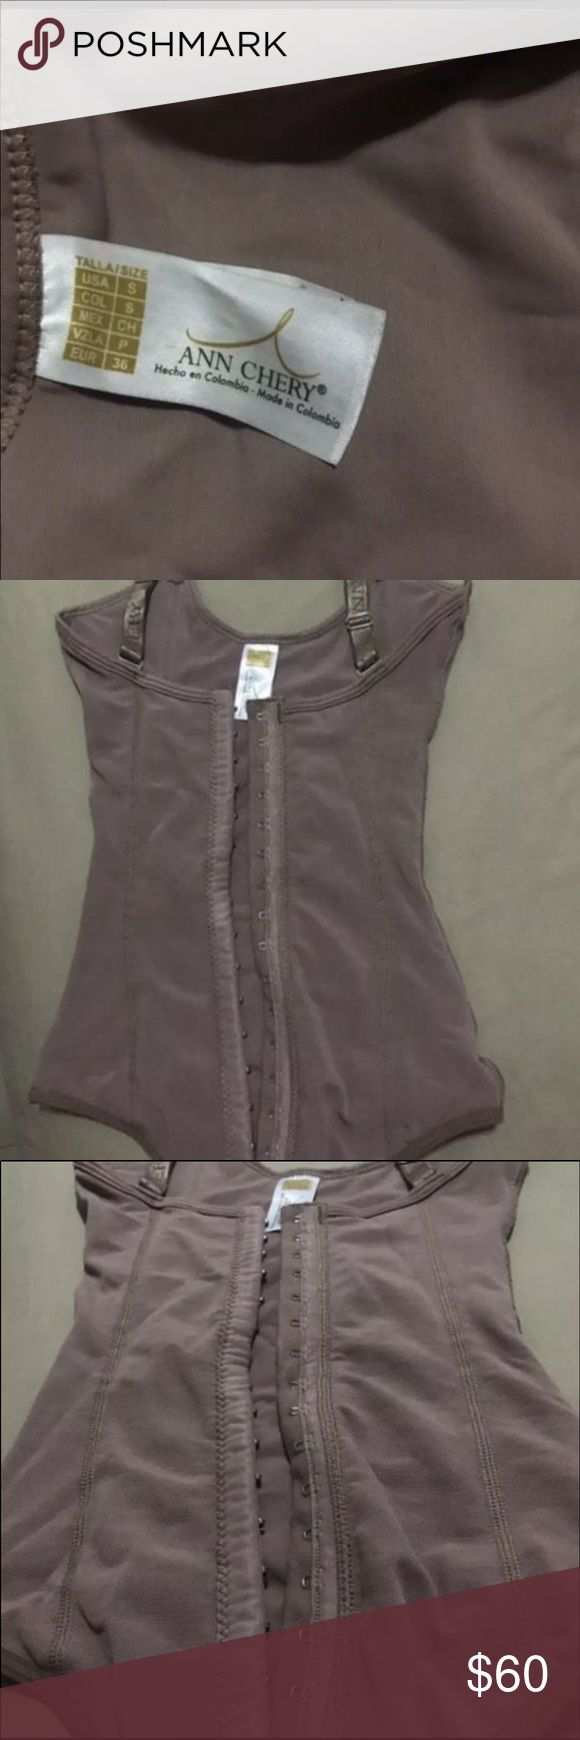 Ann chery girdle / faja Girdle Ann Chery from Colombia. Never used before. Small Other